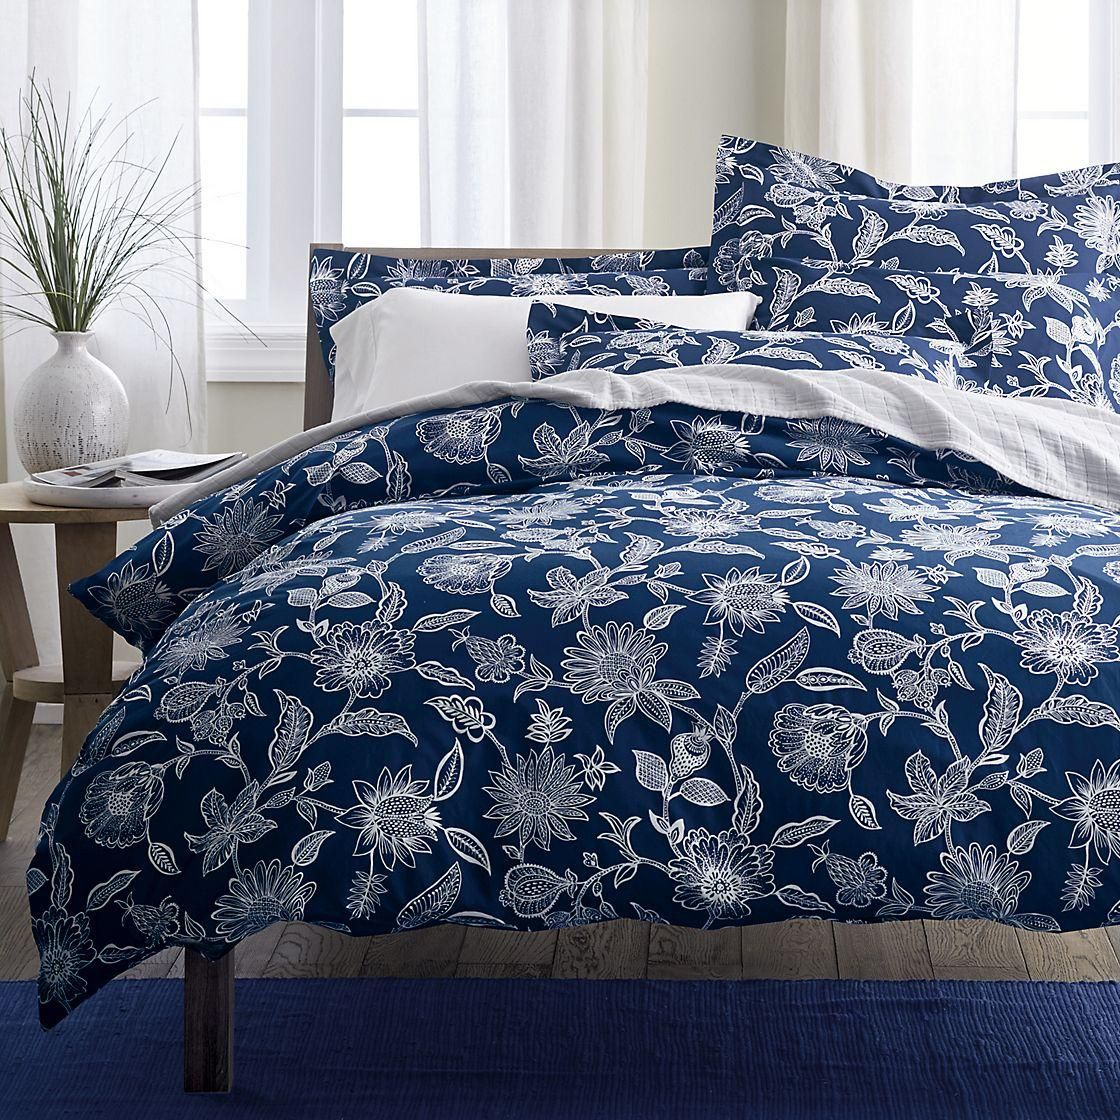 Jamison Floral Percale Duvet Cover, King, Blue/White The